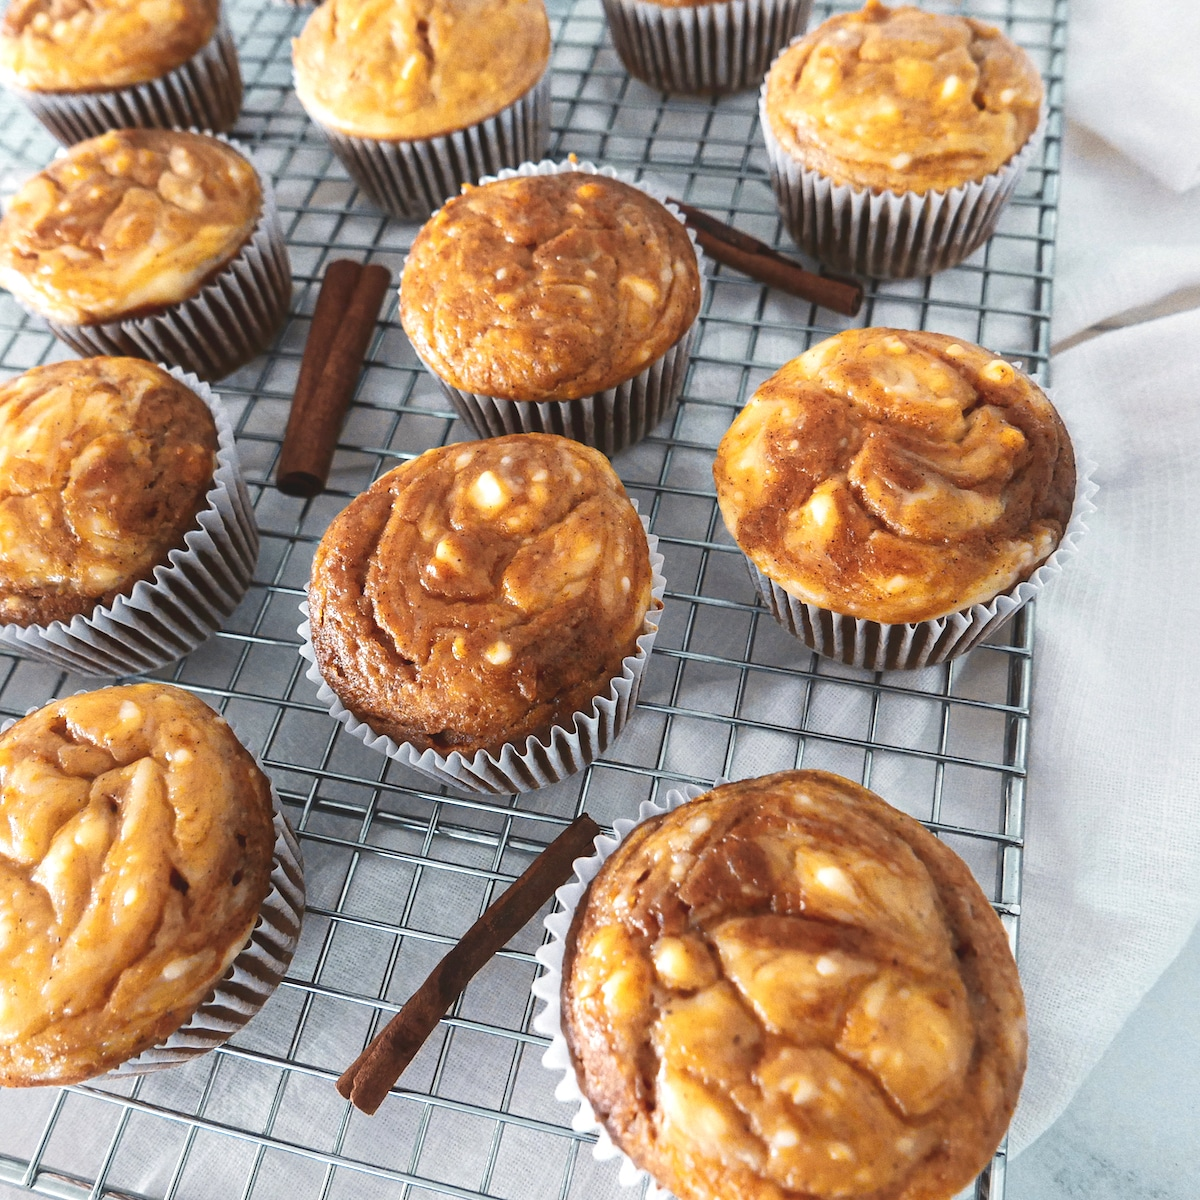 lots of pumpkin cream cheese muffins on wire rack with cinnamon sticks laying nearby